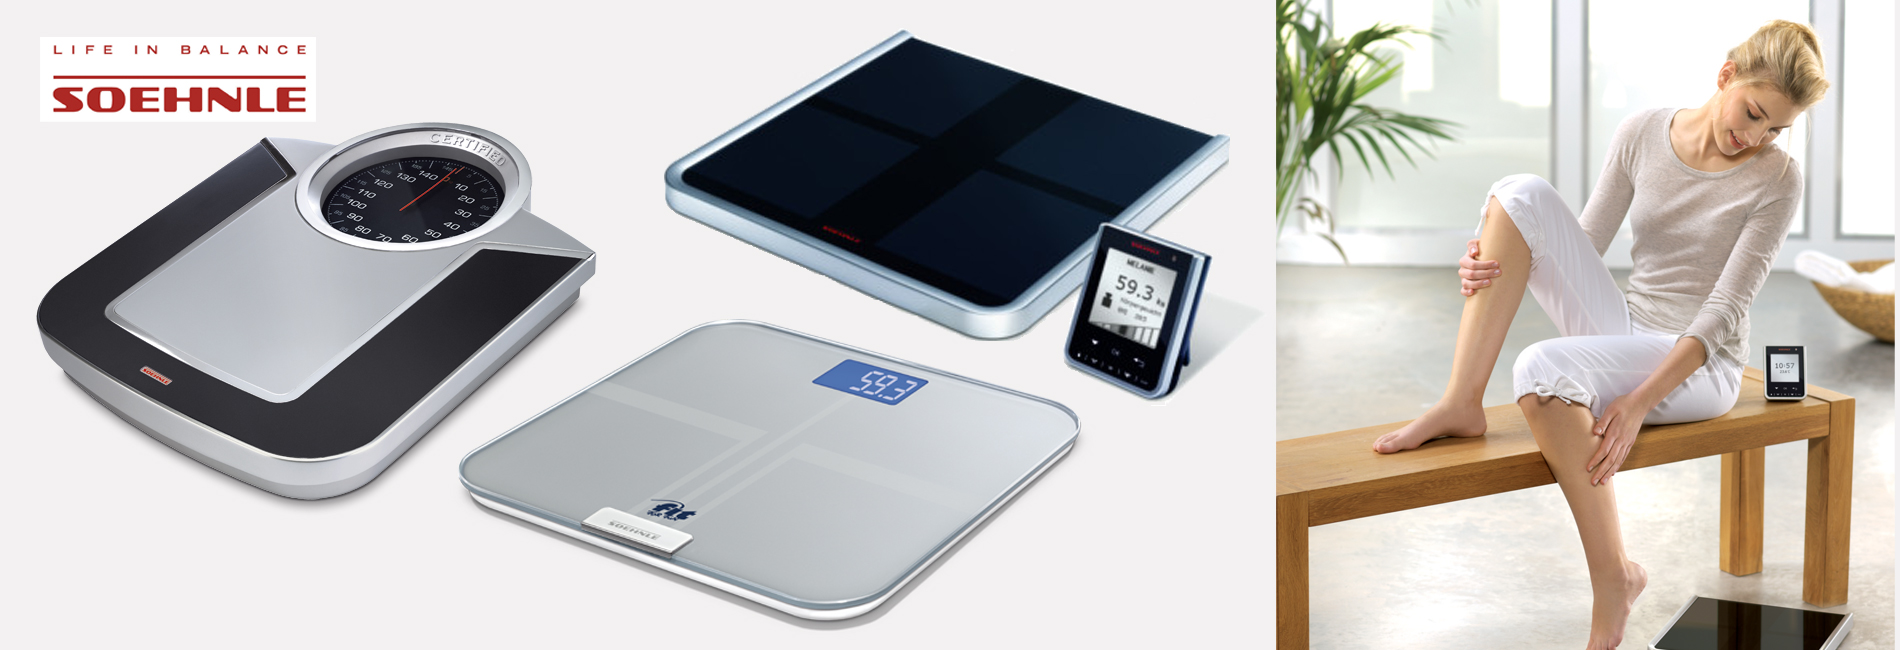 Soehnle Life in Balance : Discover our varied product range!  Personal Scales :  Body Analysis Scales, Digital Personal scales, Analogue Personal scales, Luggage Scale